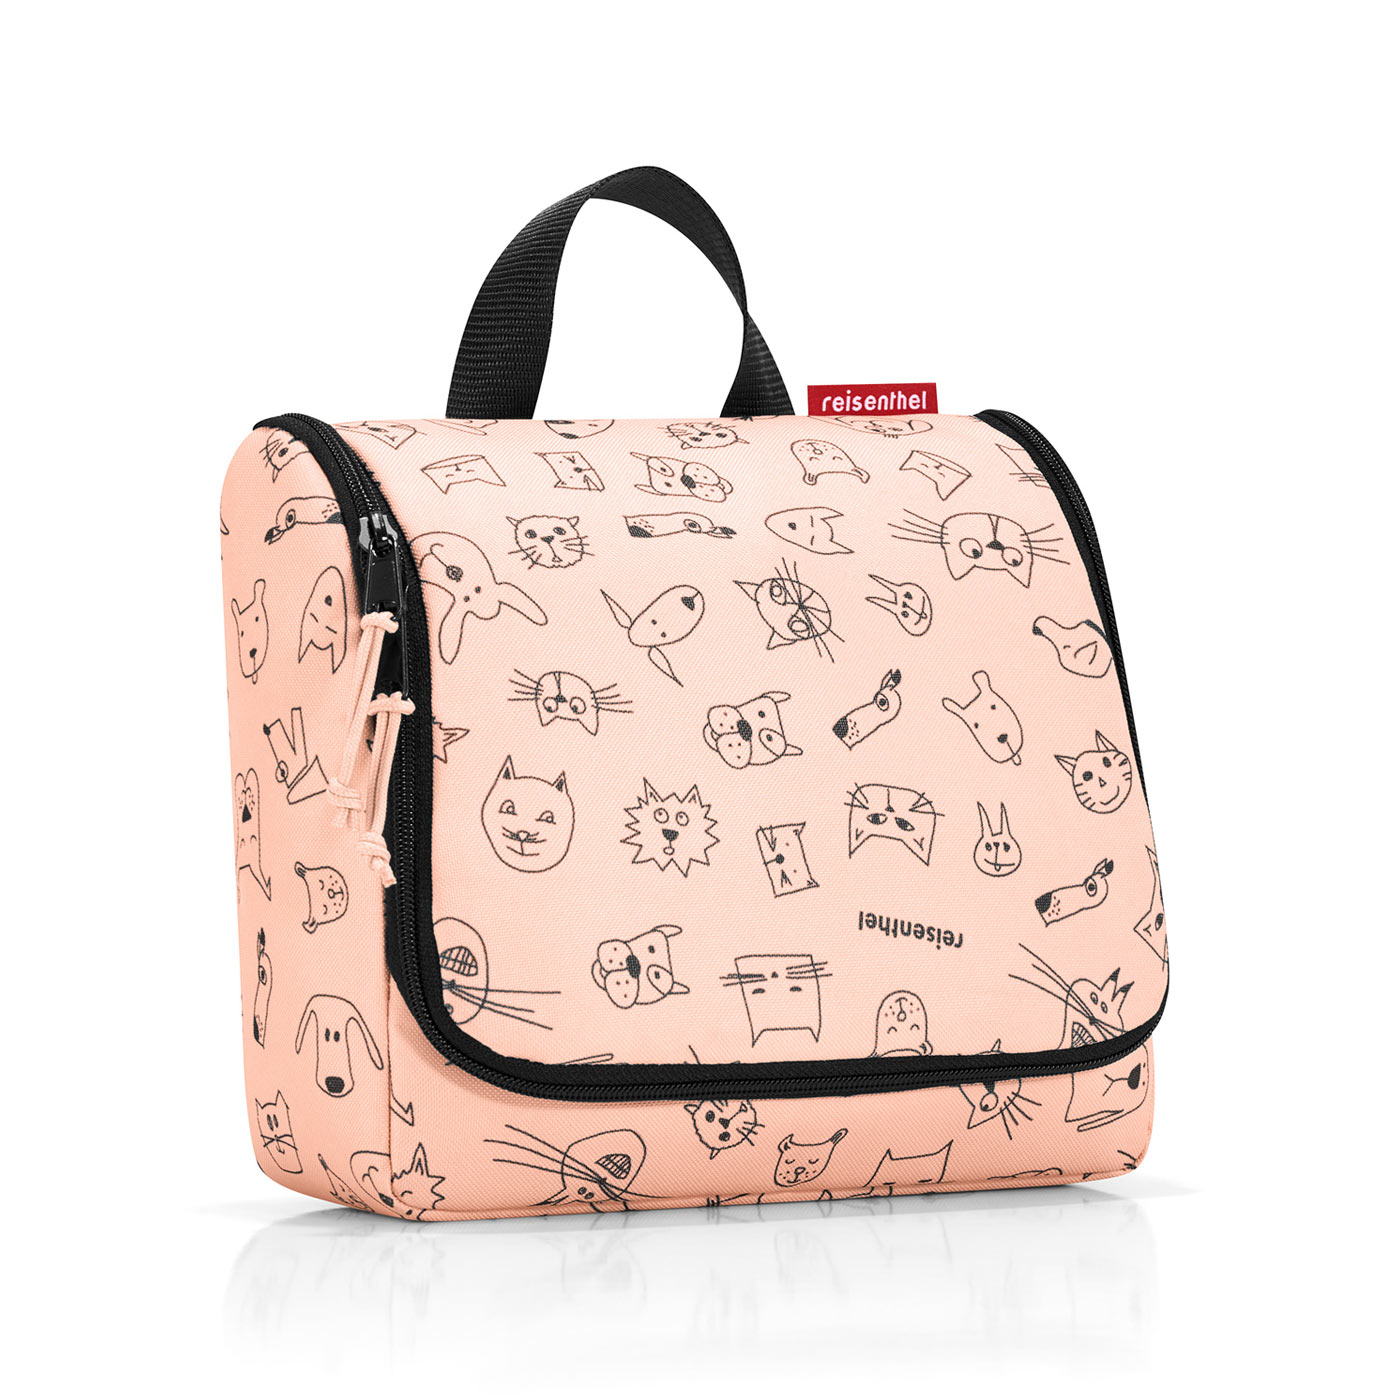 Kulturbeutel Kinder Reisenthel Kids Toiletbag Kulturbeutel Cats And Dogs Rose